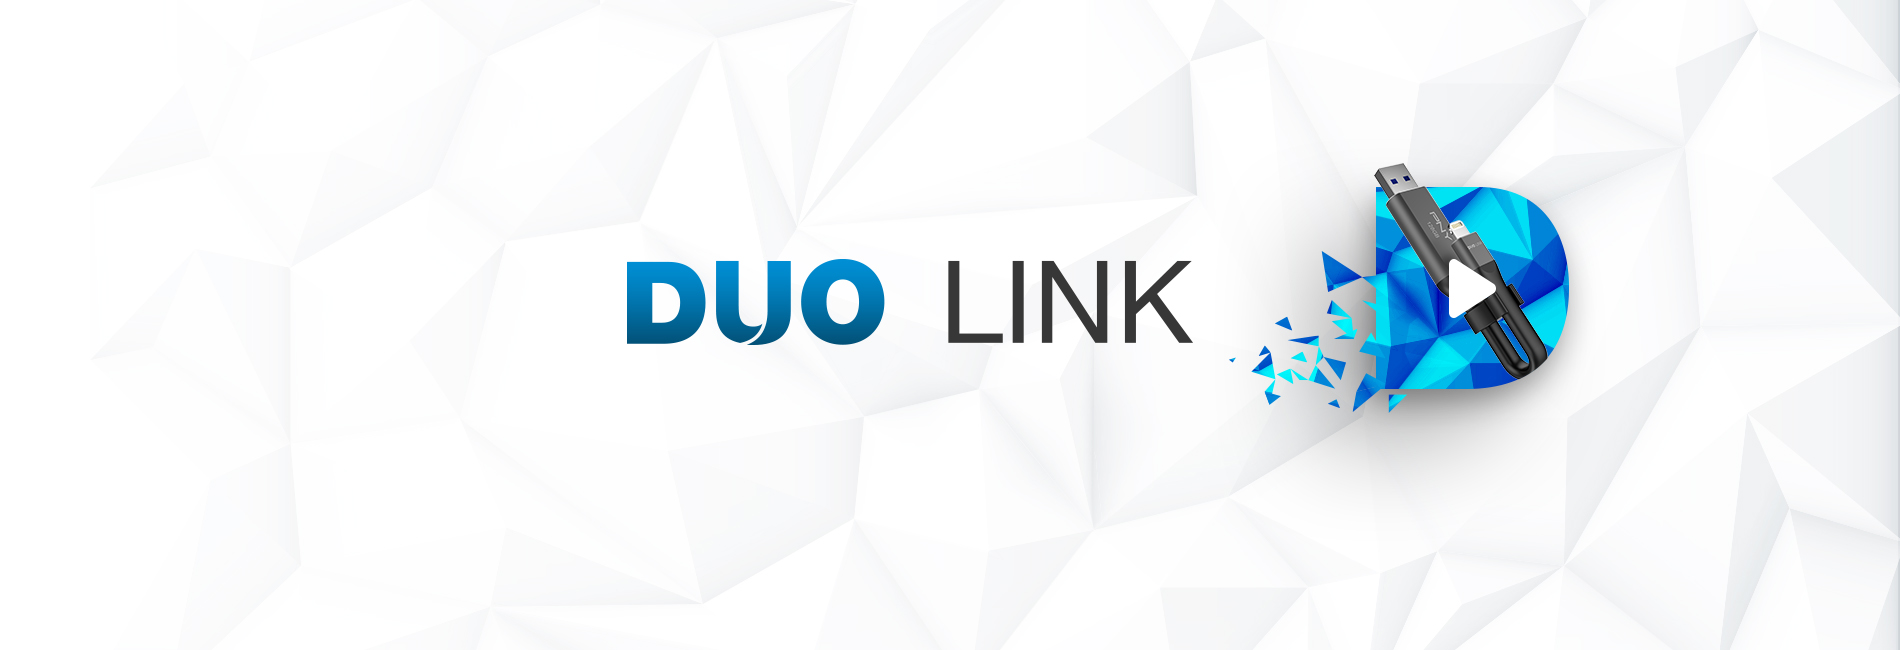 Duo-Link 3.0 Cable Design for Apple devices